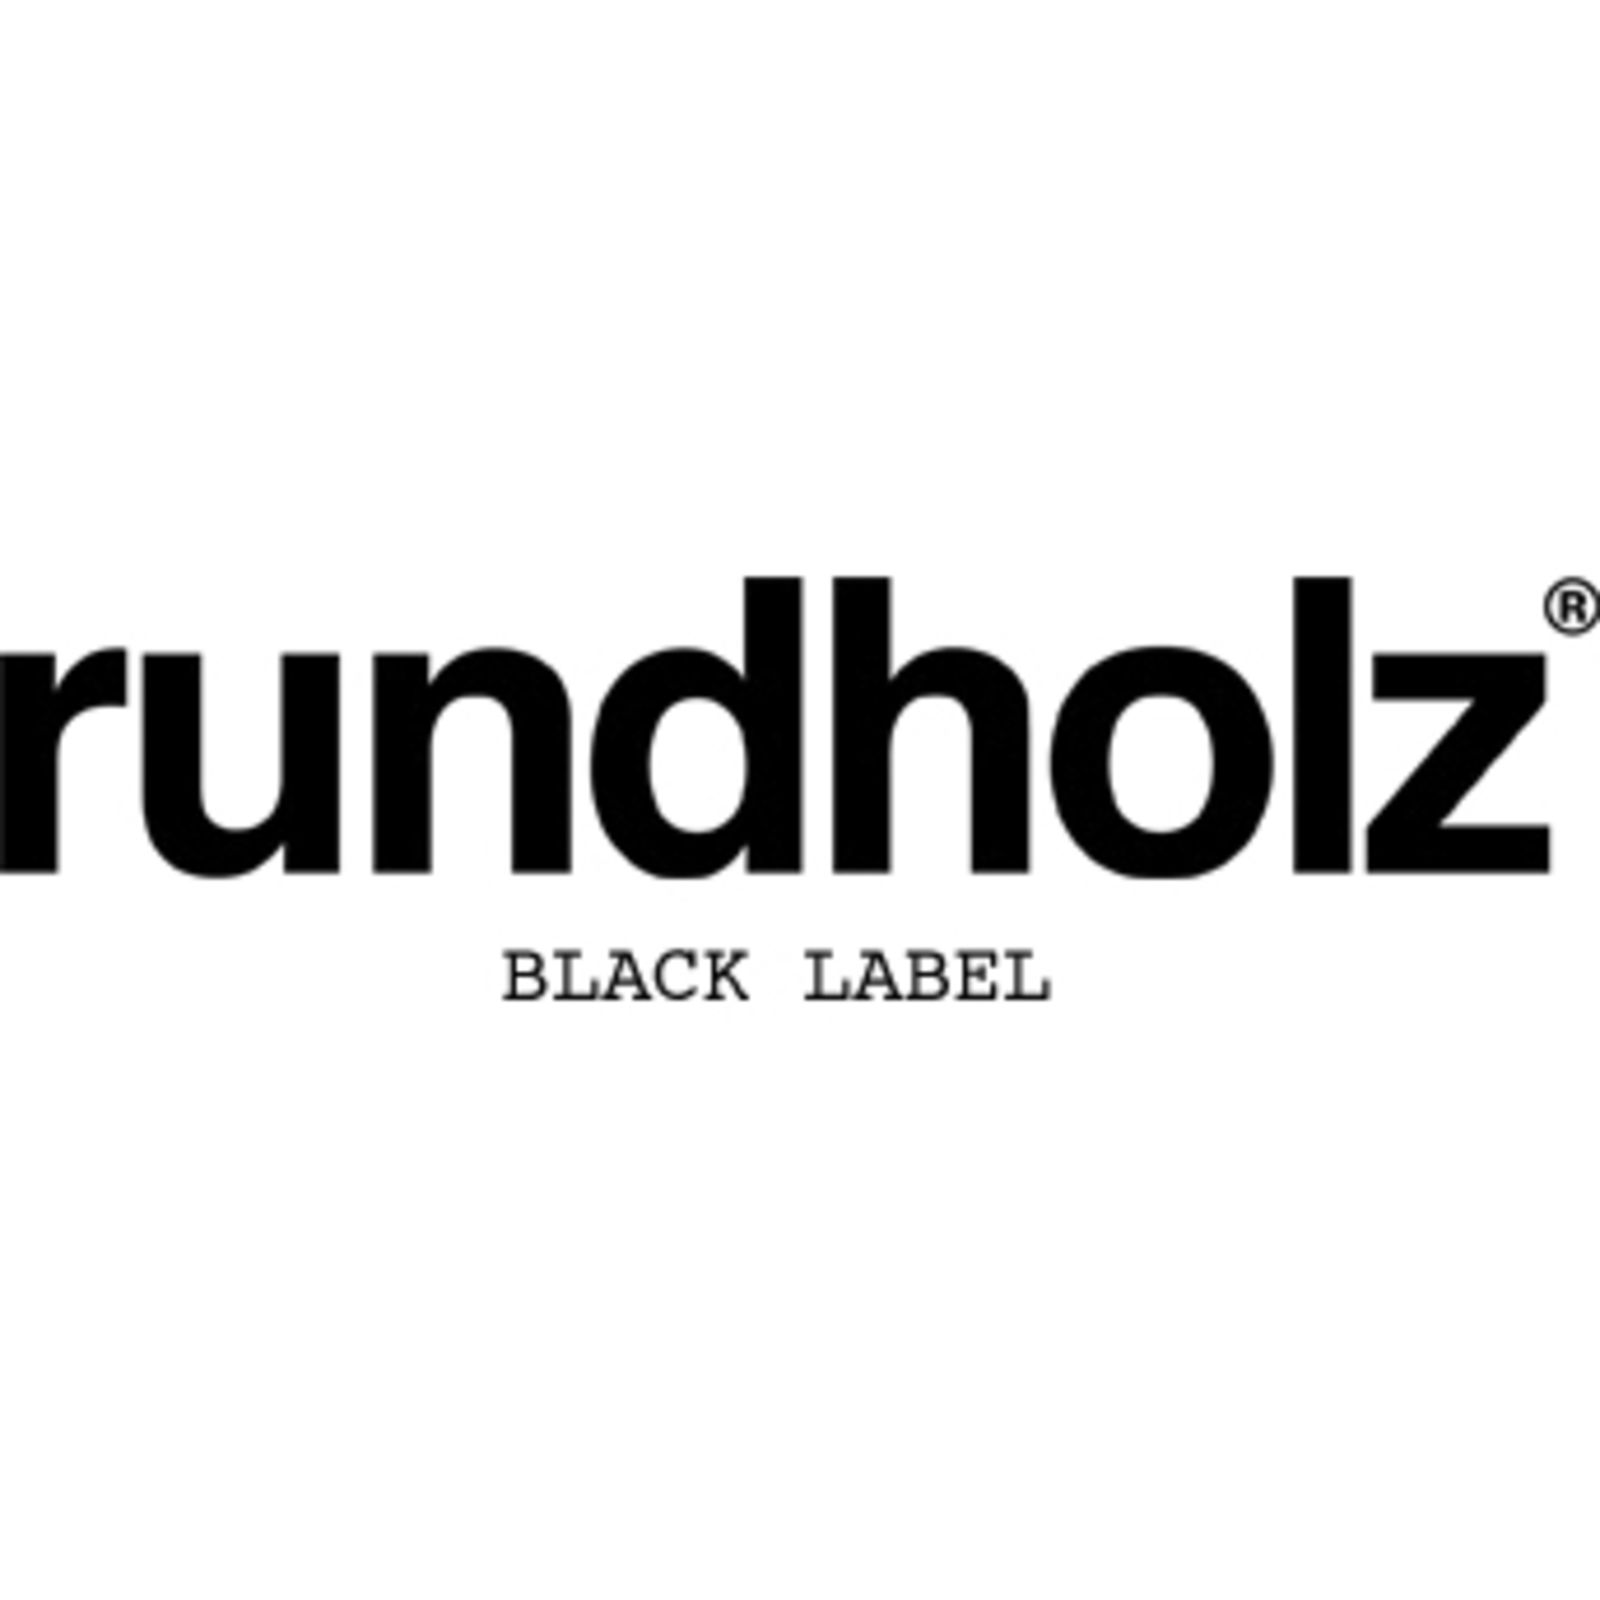 rundholz black label (Bild 1)